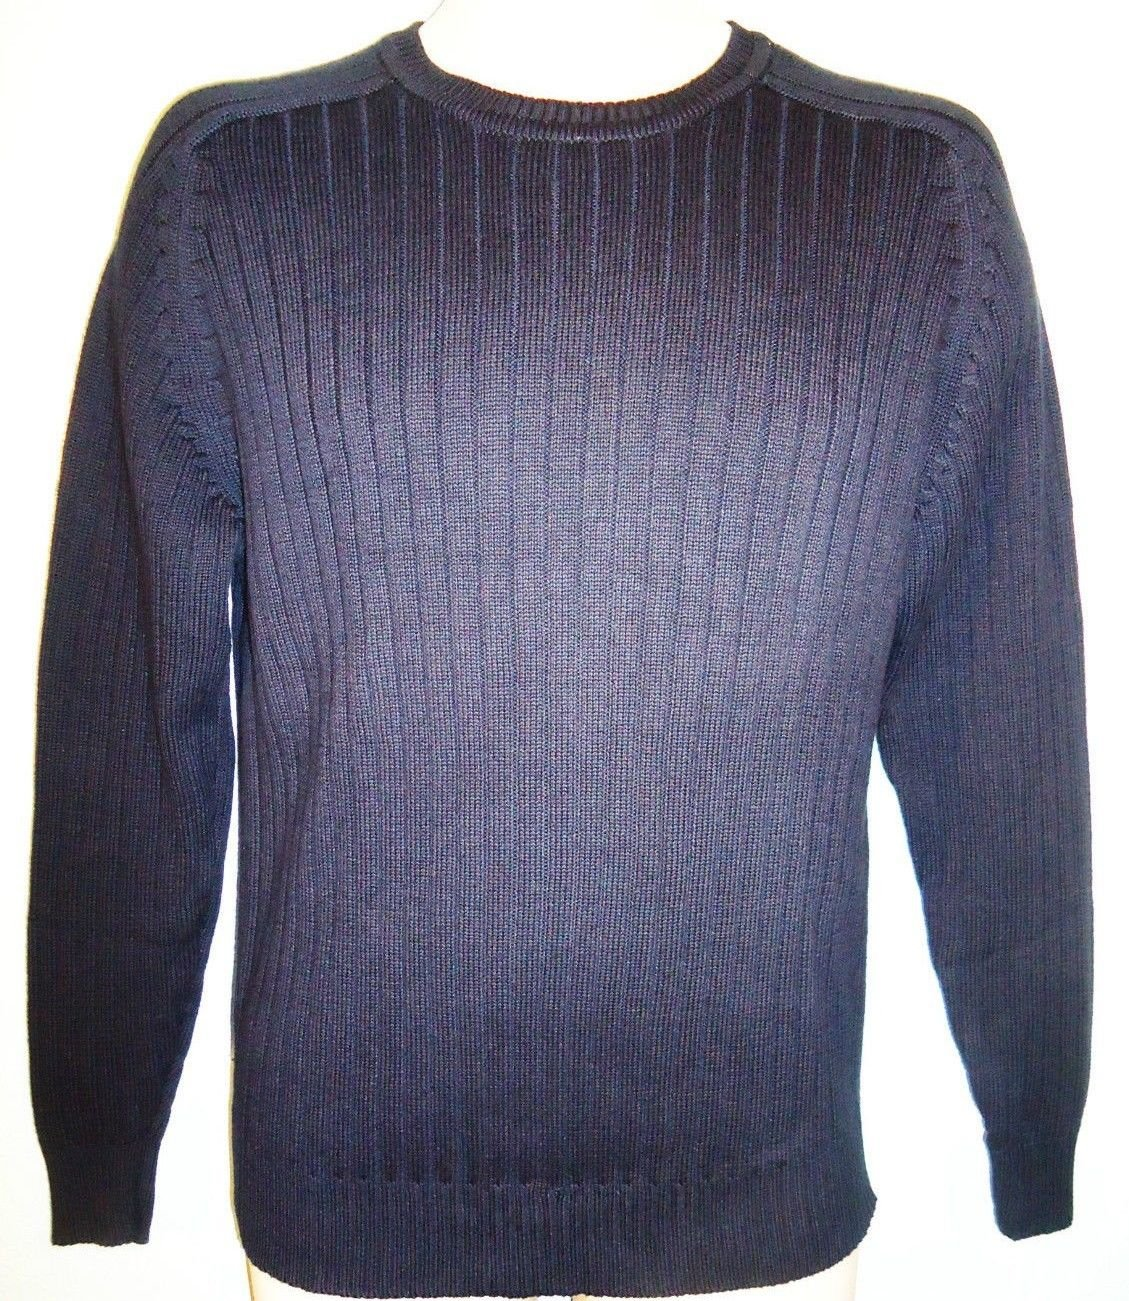 OSCAR DE LA RENTA - NAVY - BLUE - DESIGNER - CREW NECK - SWEATER - NEW - SMALL